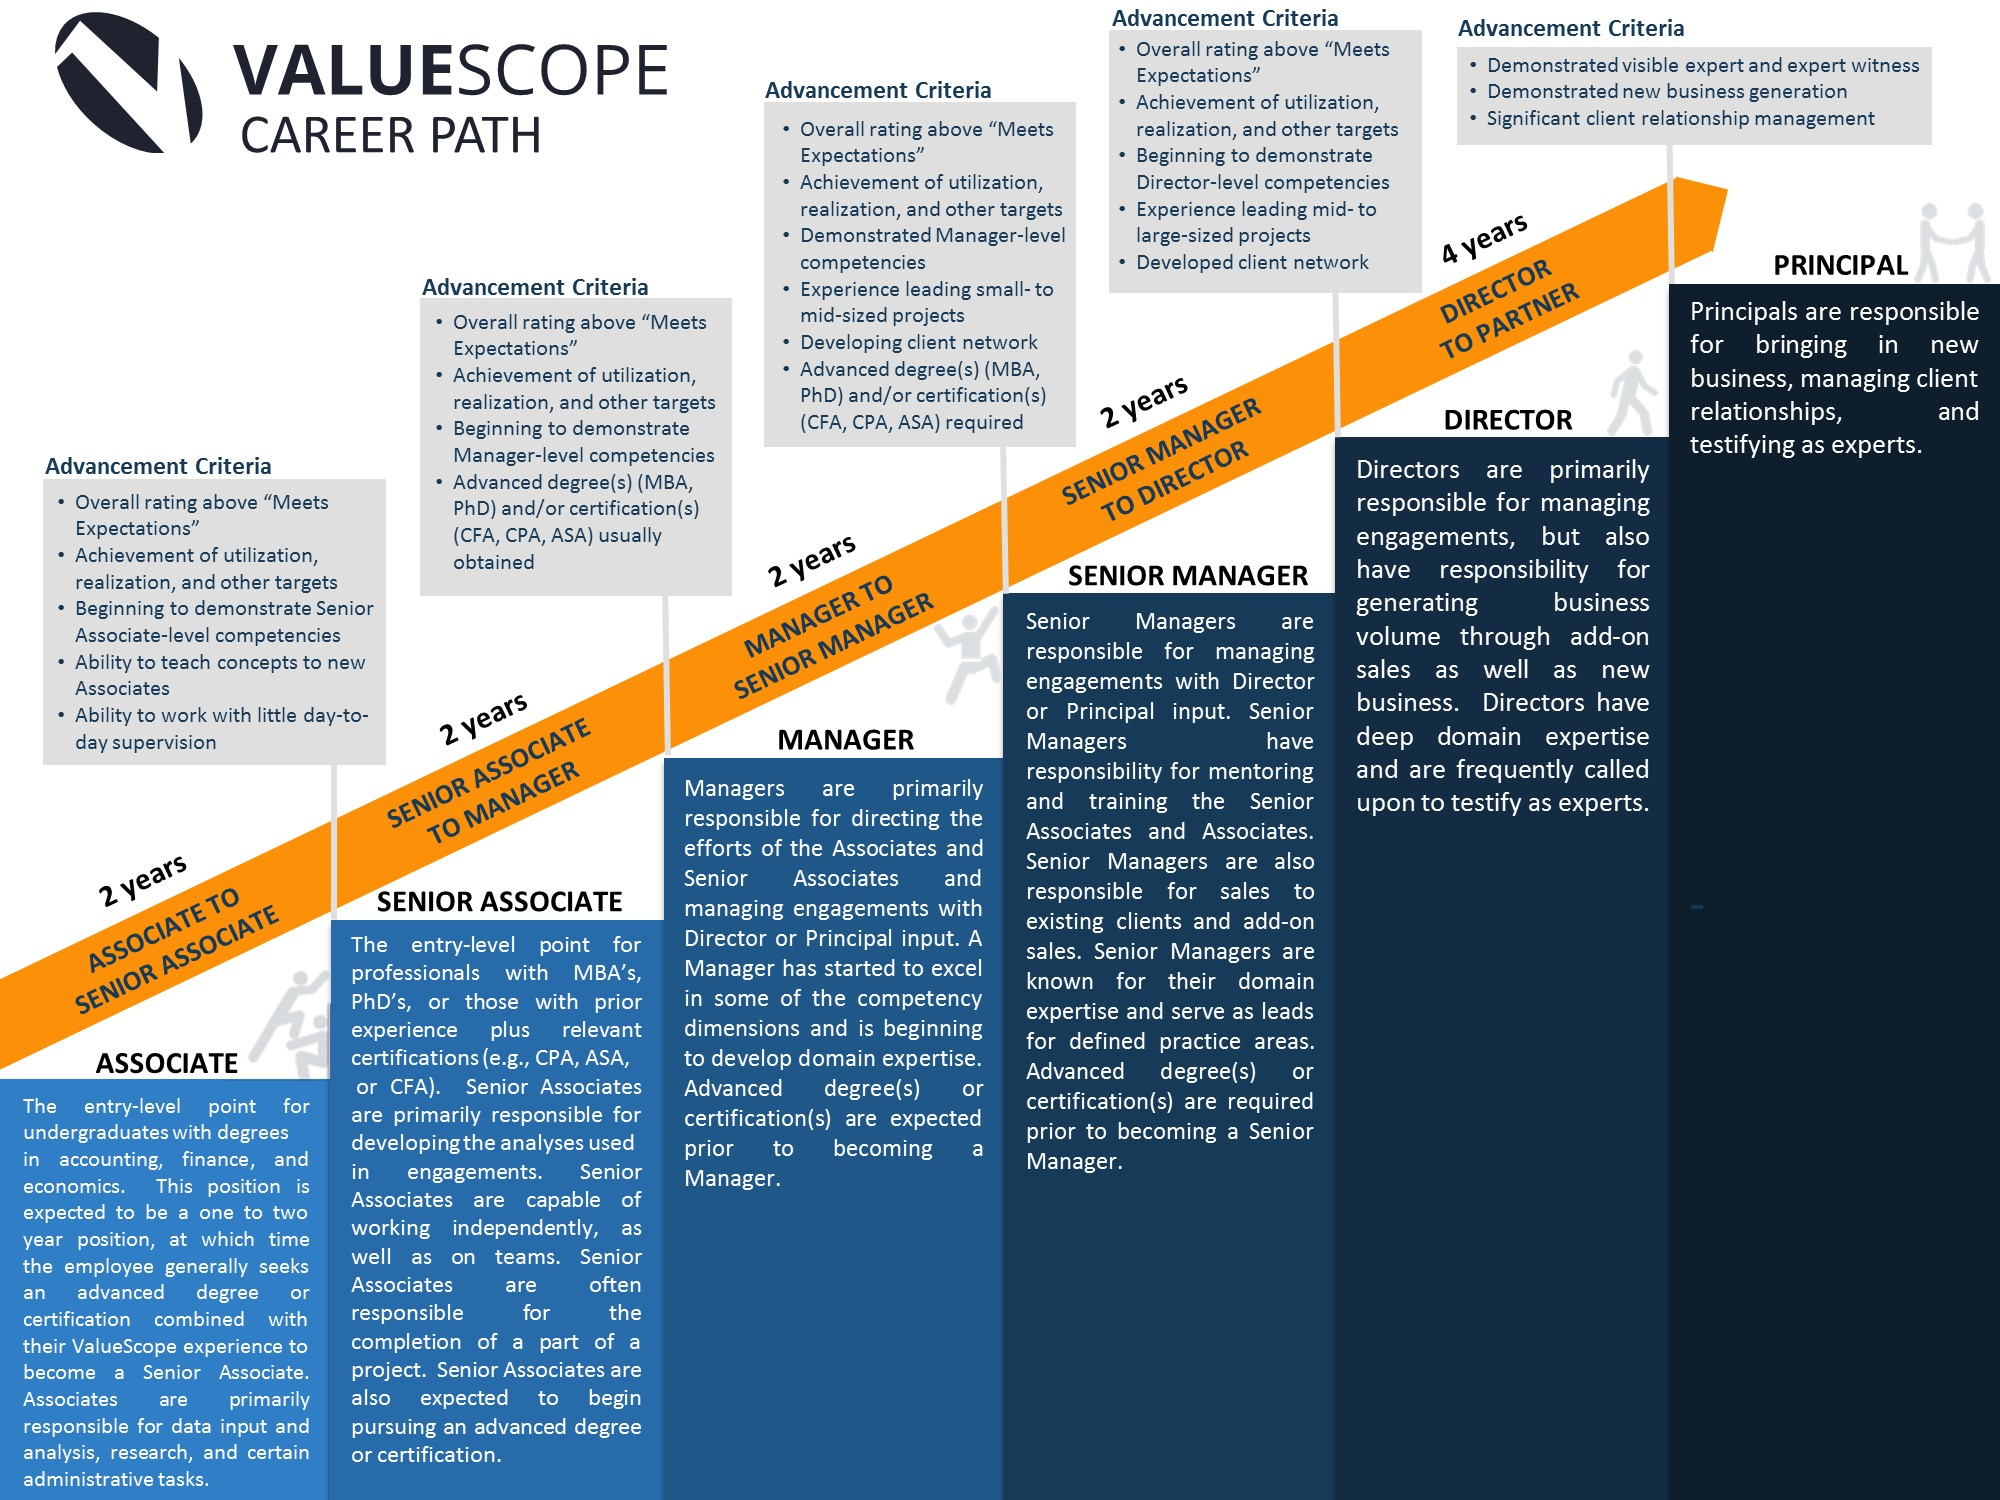 ValueScope's Career Steps 2015